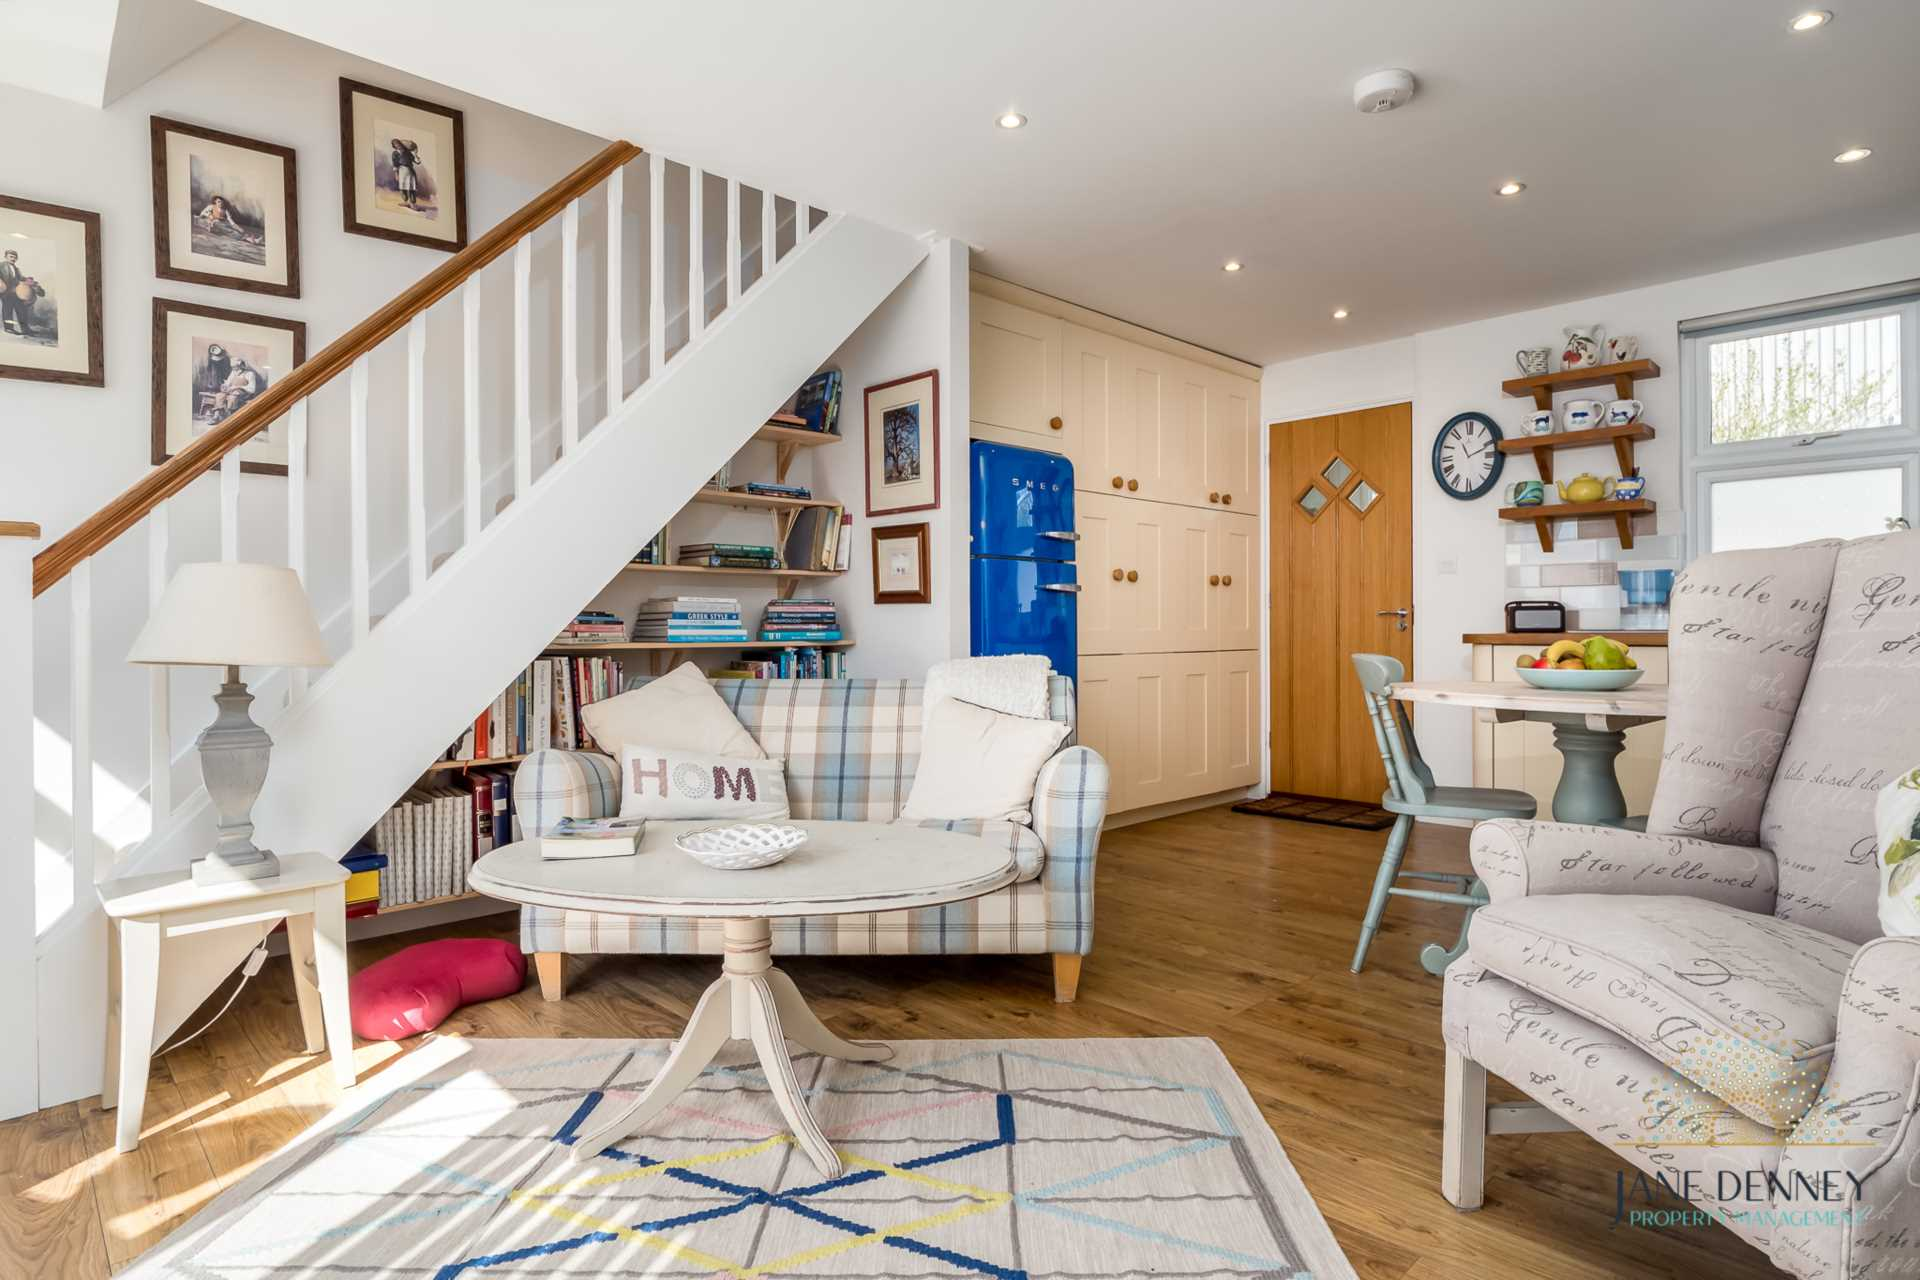 St Peter -  - Exceptional 2 Bedroom Cottage -QUALIFIED, Image 6